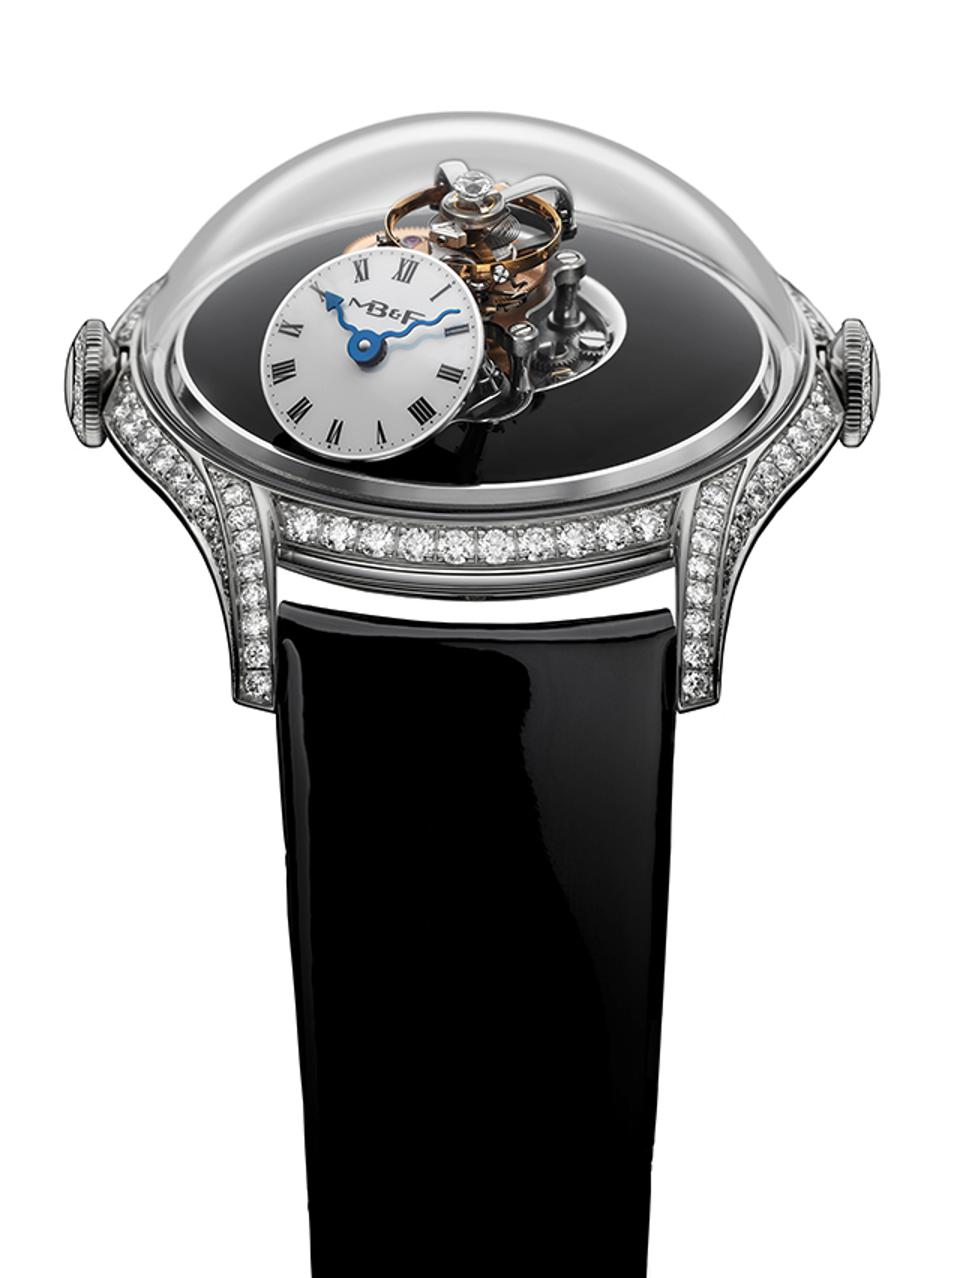 MB&F won the Ladies Complication category for the Legacy Machine FlyingT, a flying tourbillon with high dome-shaped sapphire crystal.